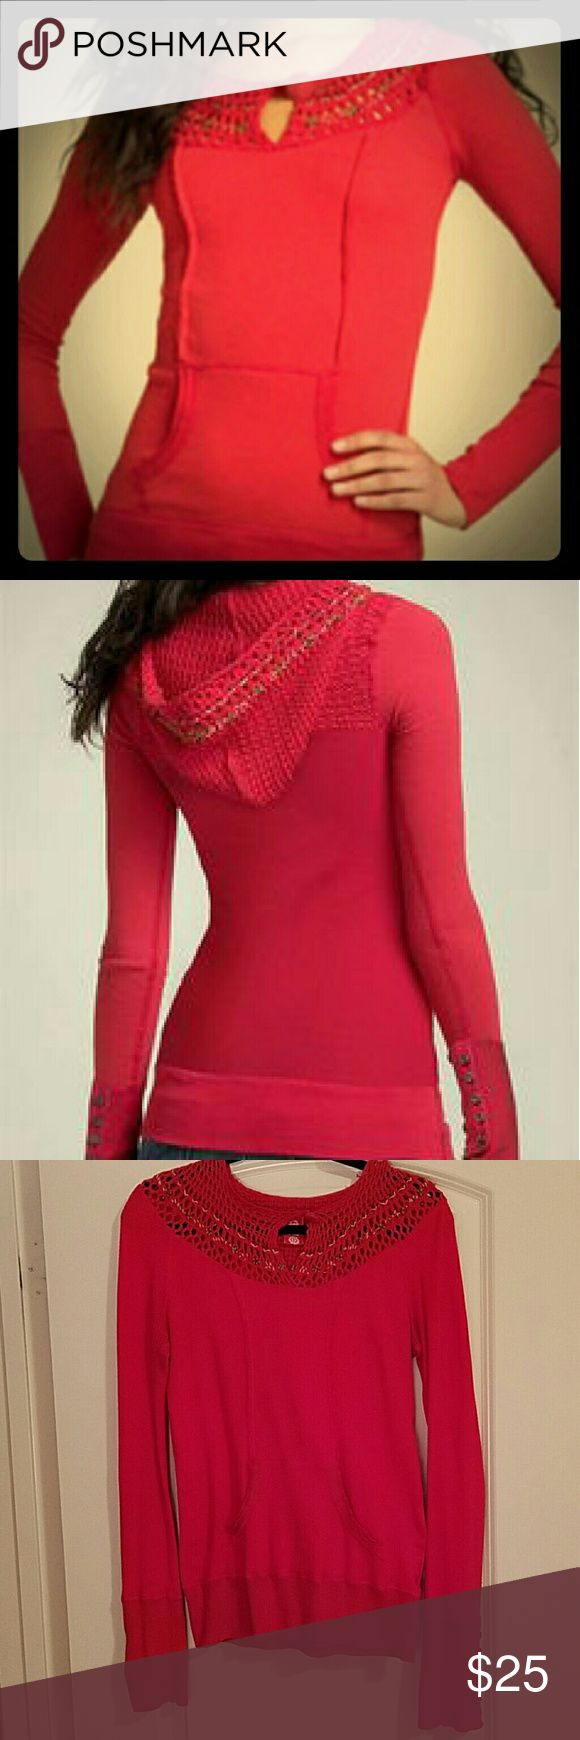 Free People red thermal hoodie Free People stretchy thermal hoodie with crochet neckline. Front pocket and 6 bronze buttons on sleeve cuffs. 57% cotton, 42% modal, 1% spandex Free People Tops Sweatshirts & Hoodies